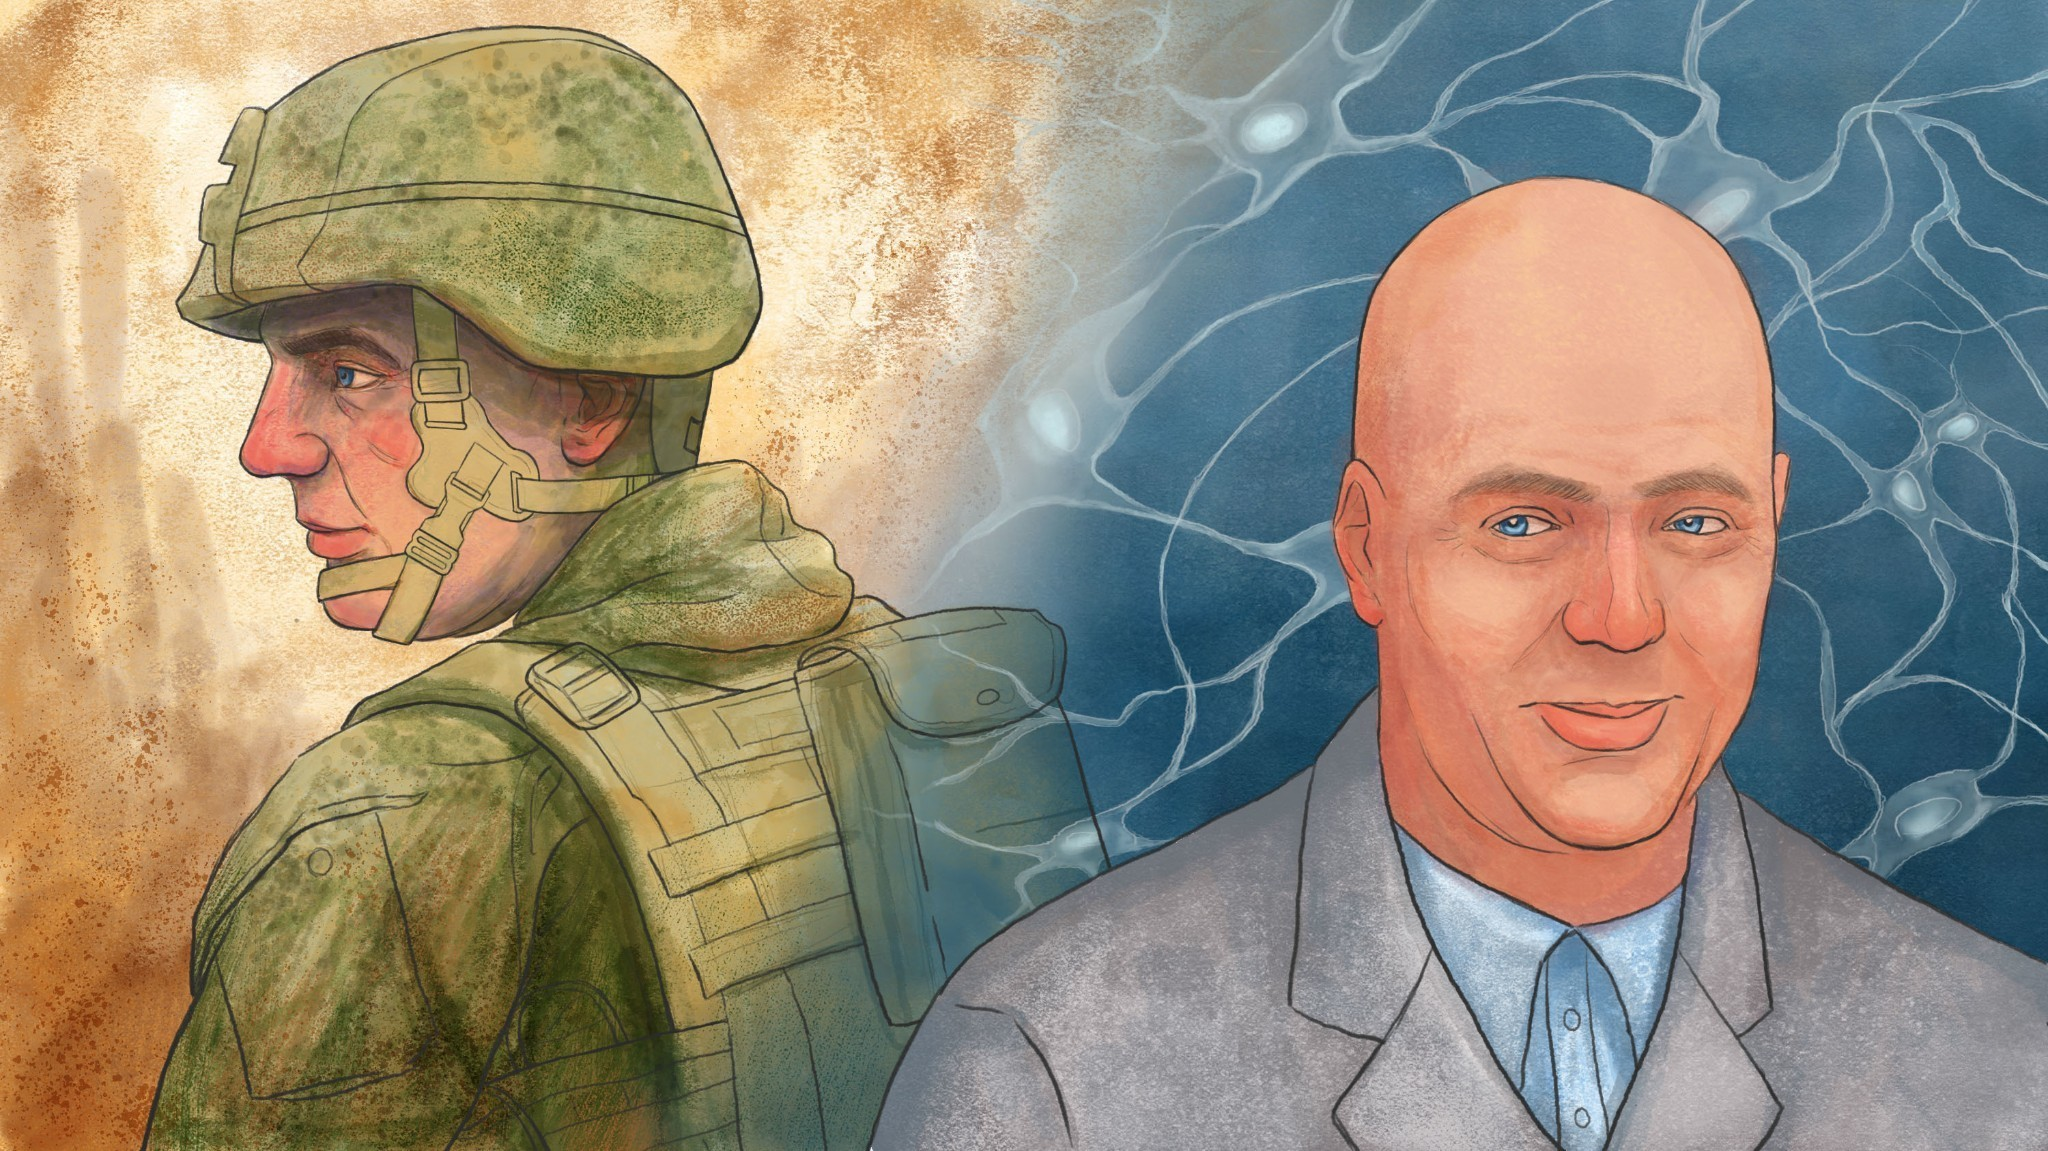 An Army Buddy's Call For Help Sends A Scientist On A Brain Injury Quest